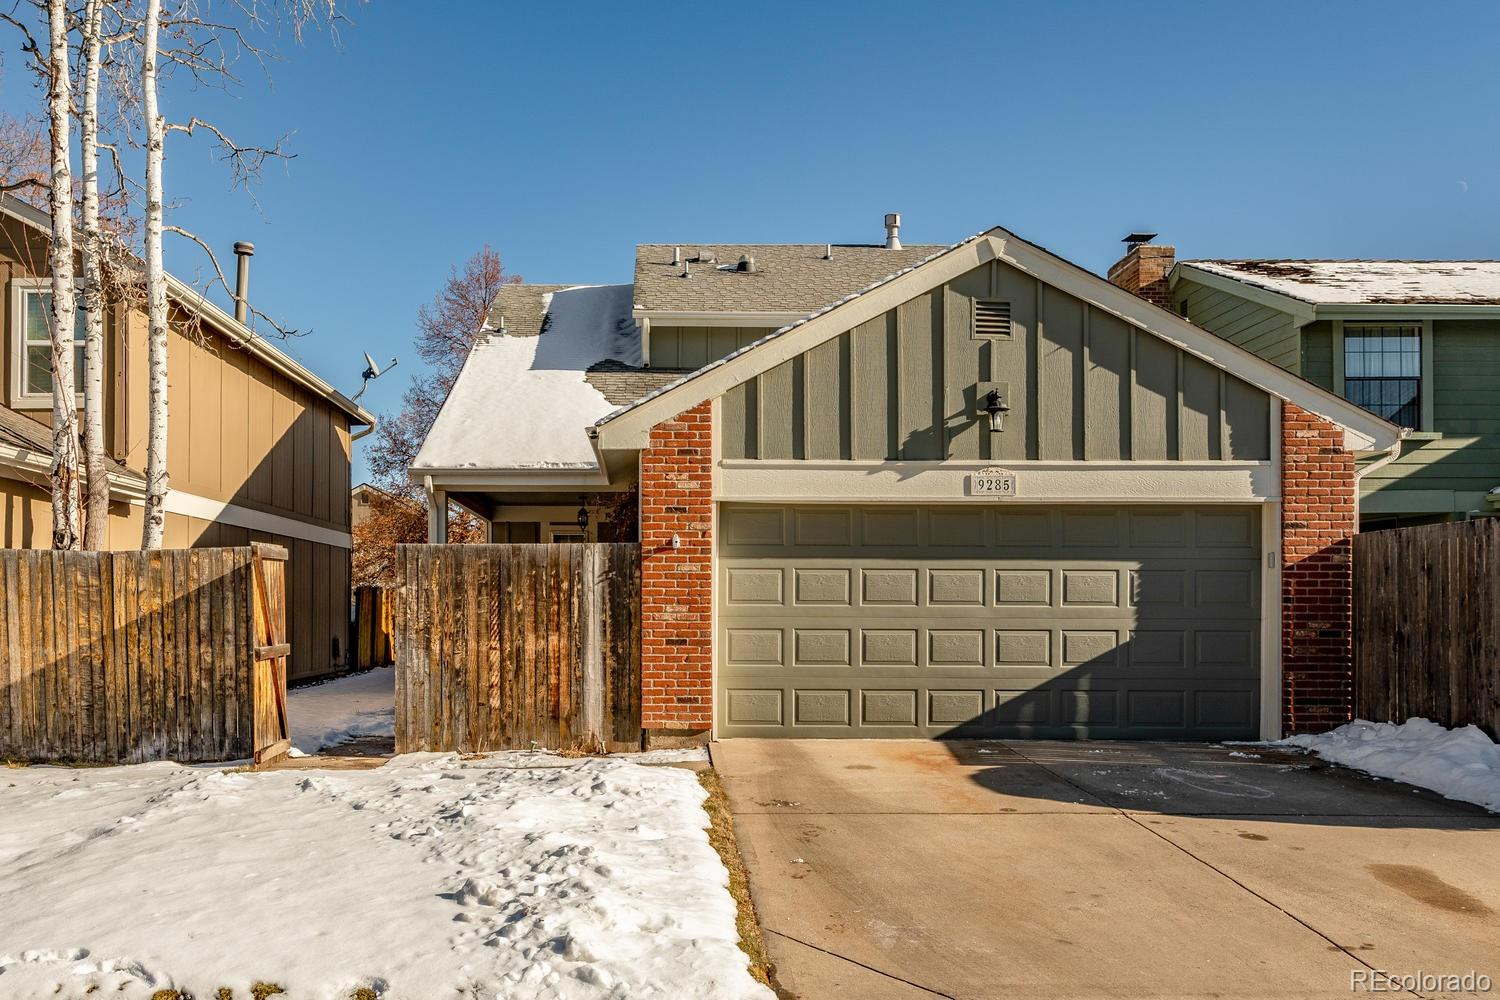 MLS# 6117171 - 28 - 9285 W 87th Place, Arvada, CO 80005